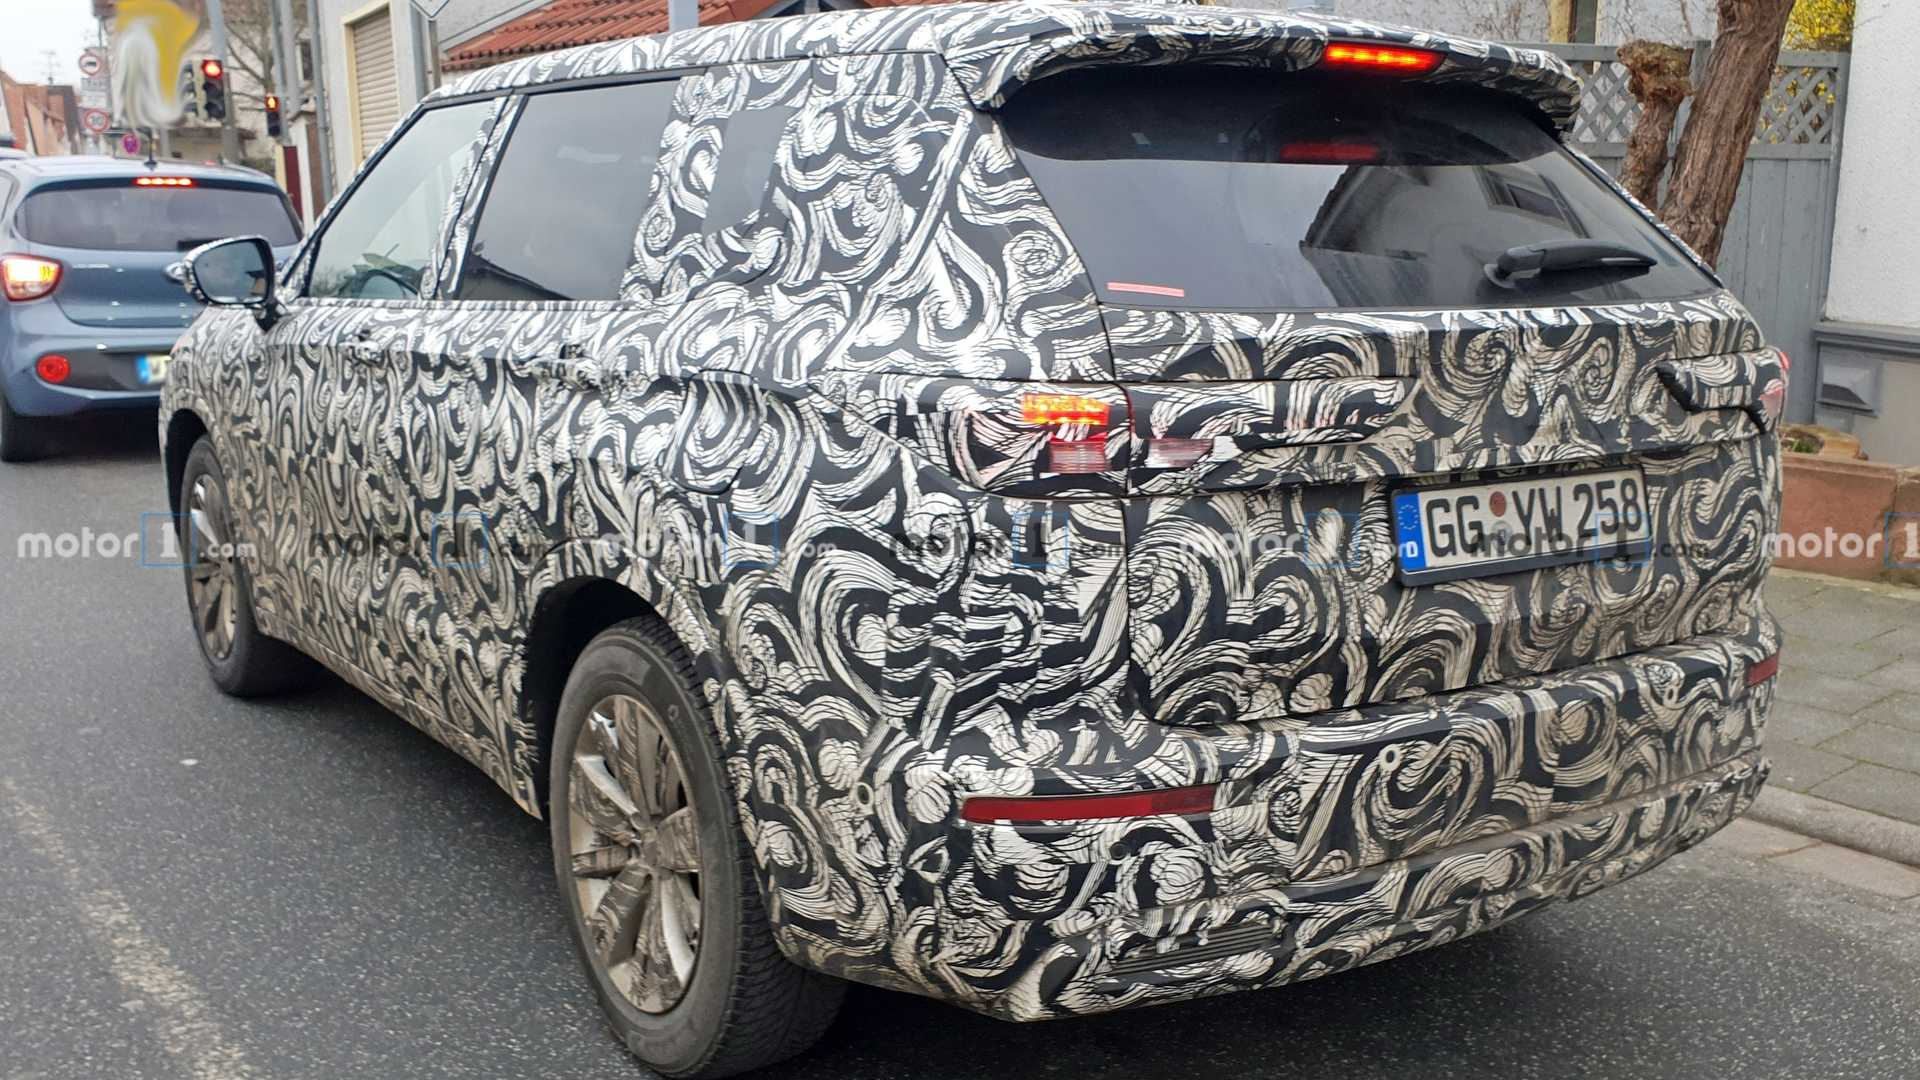 2021-mitsubishi-outlander-spy-photos-2.jpg